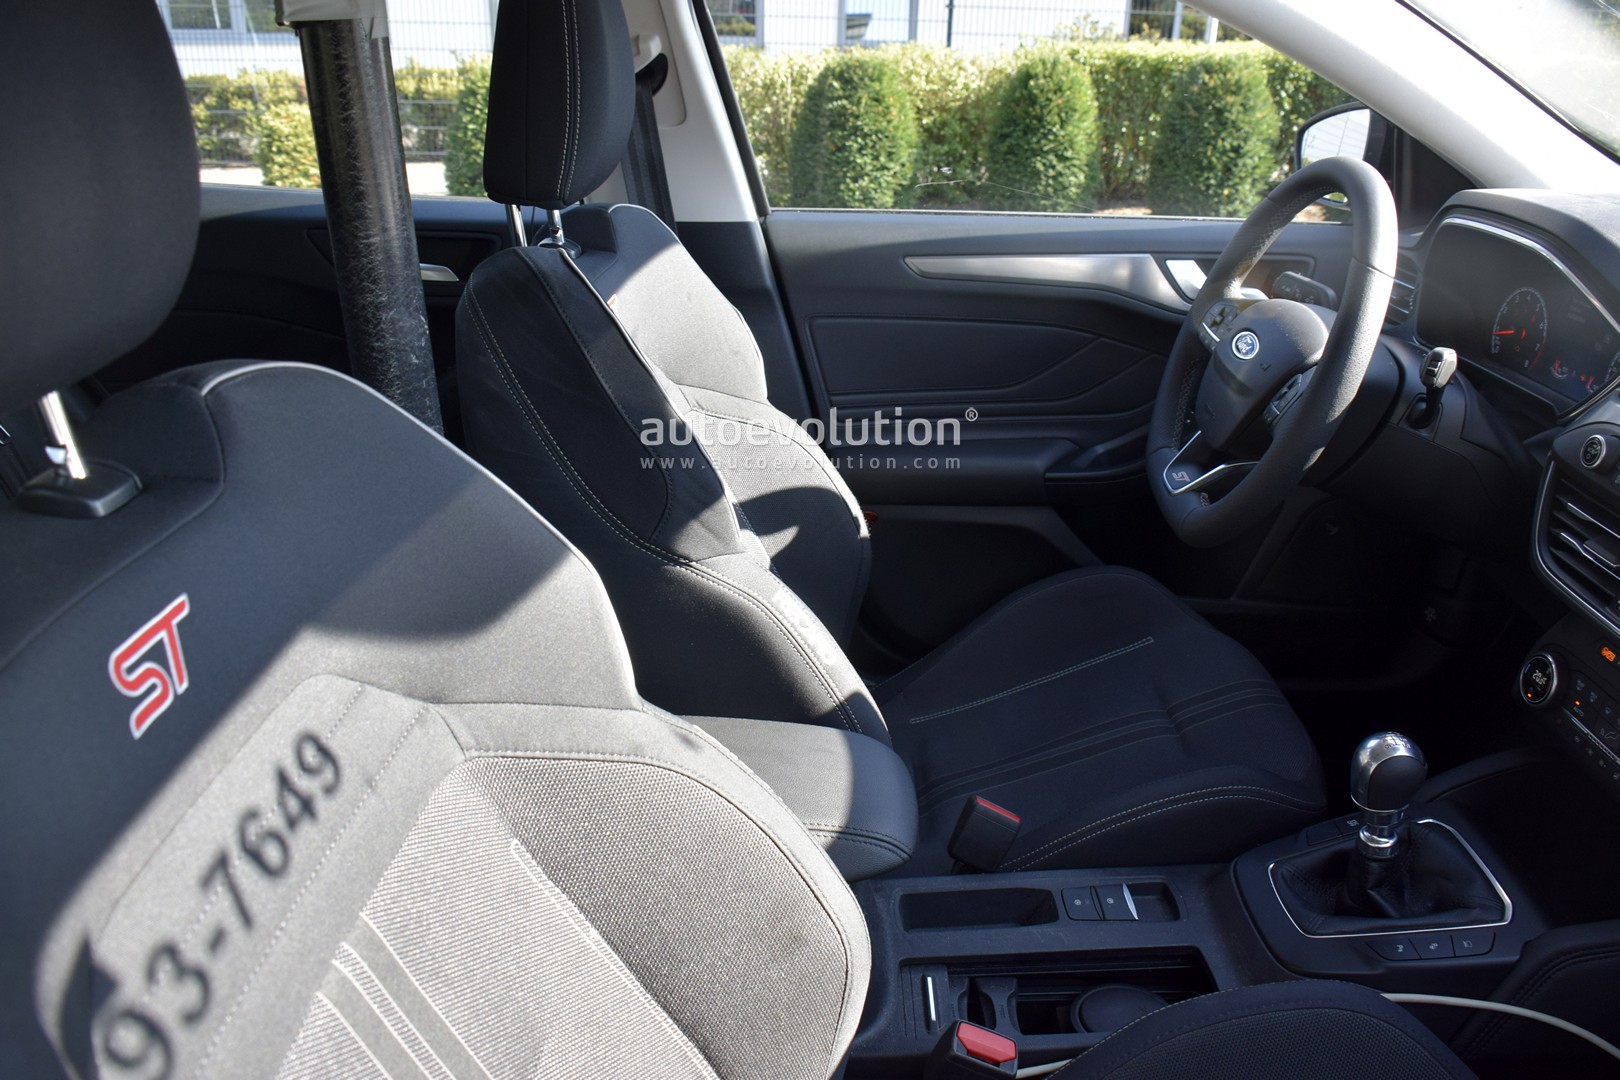 2020 Ford Focus St Reveals Interior In Latest Spyshots